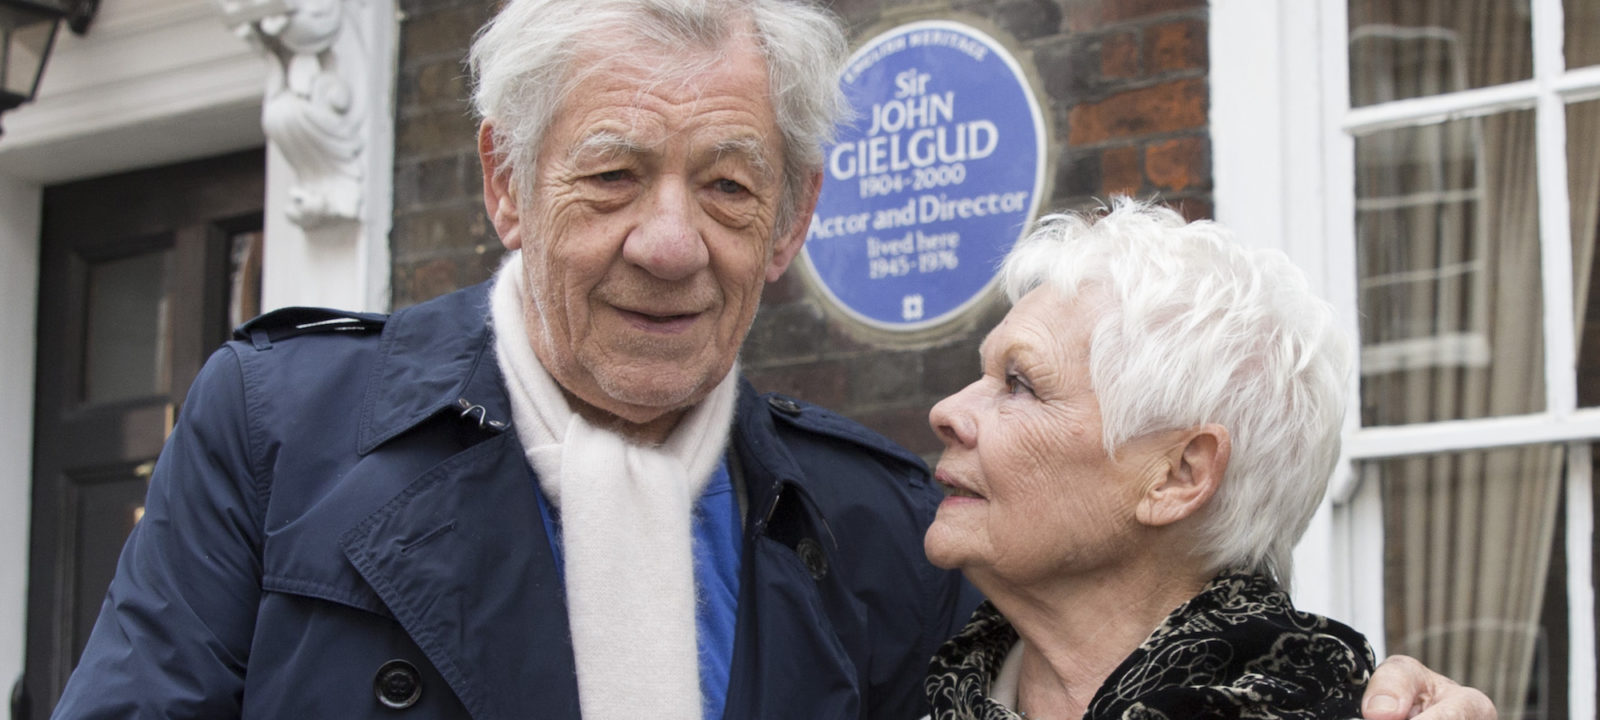 Sir John Gielgud Receives English Heritage Blue Plaque